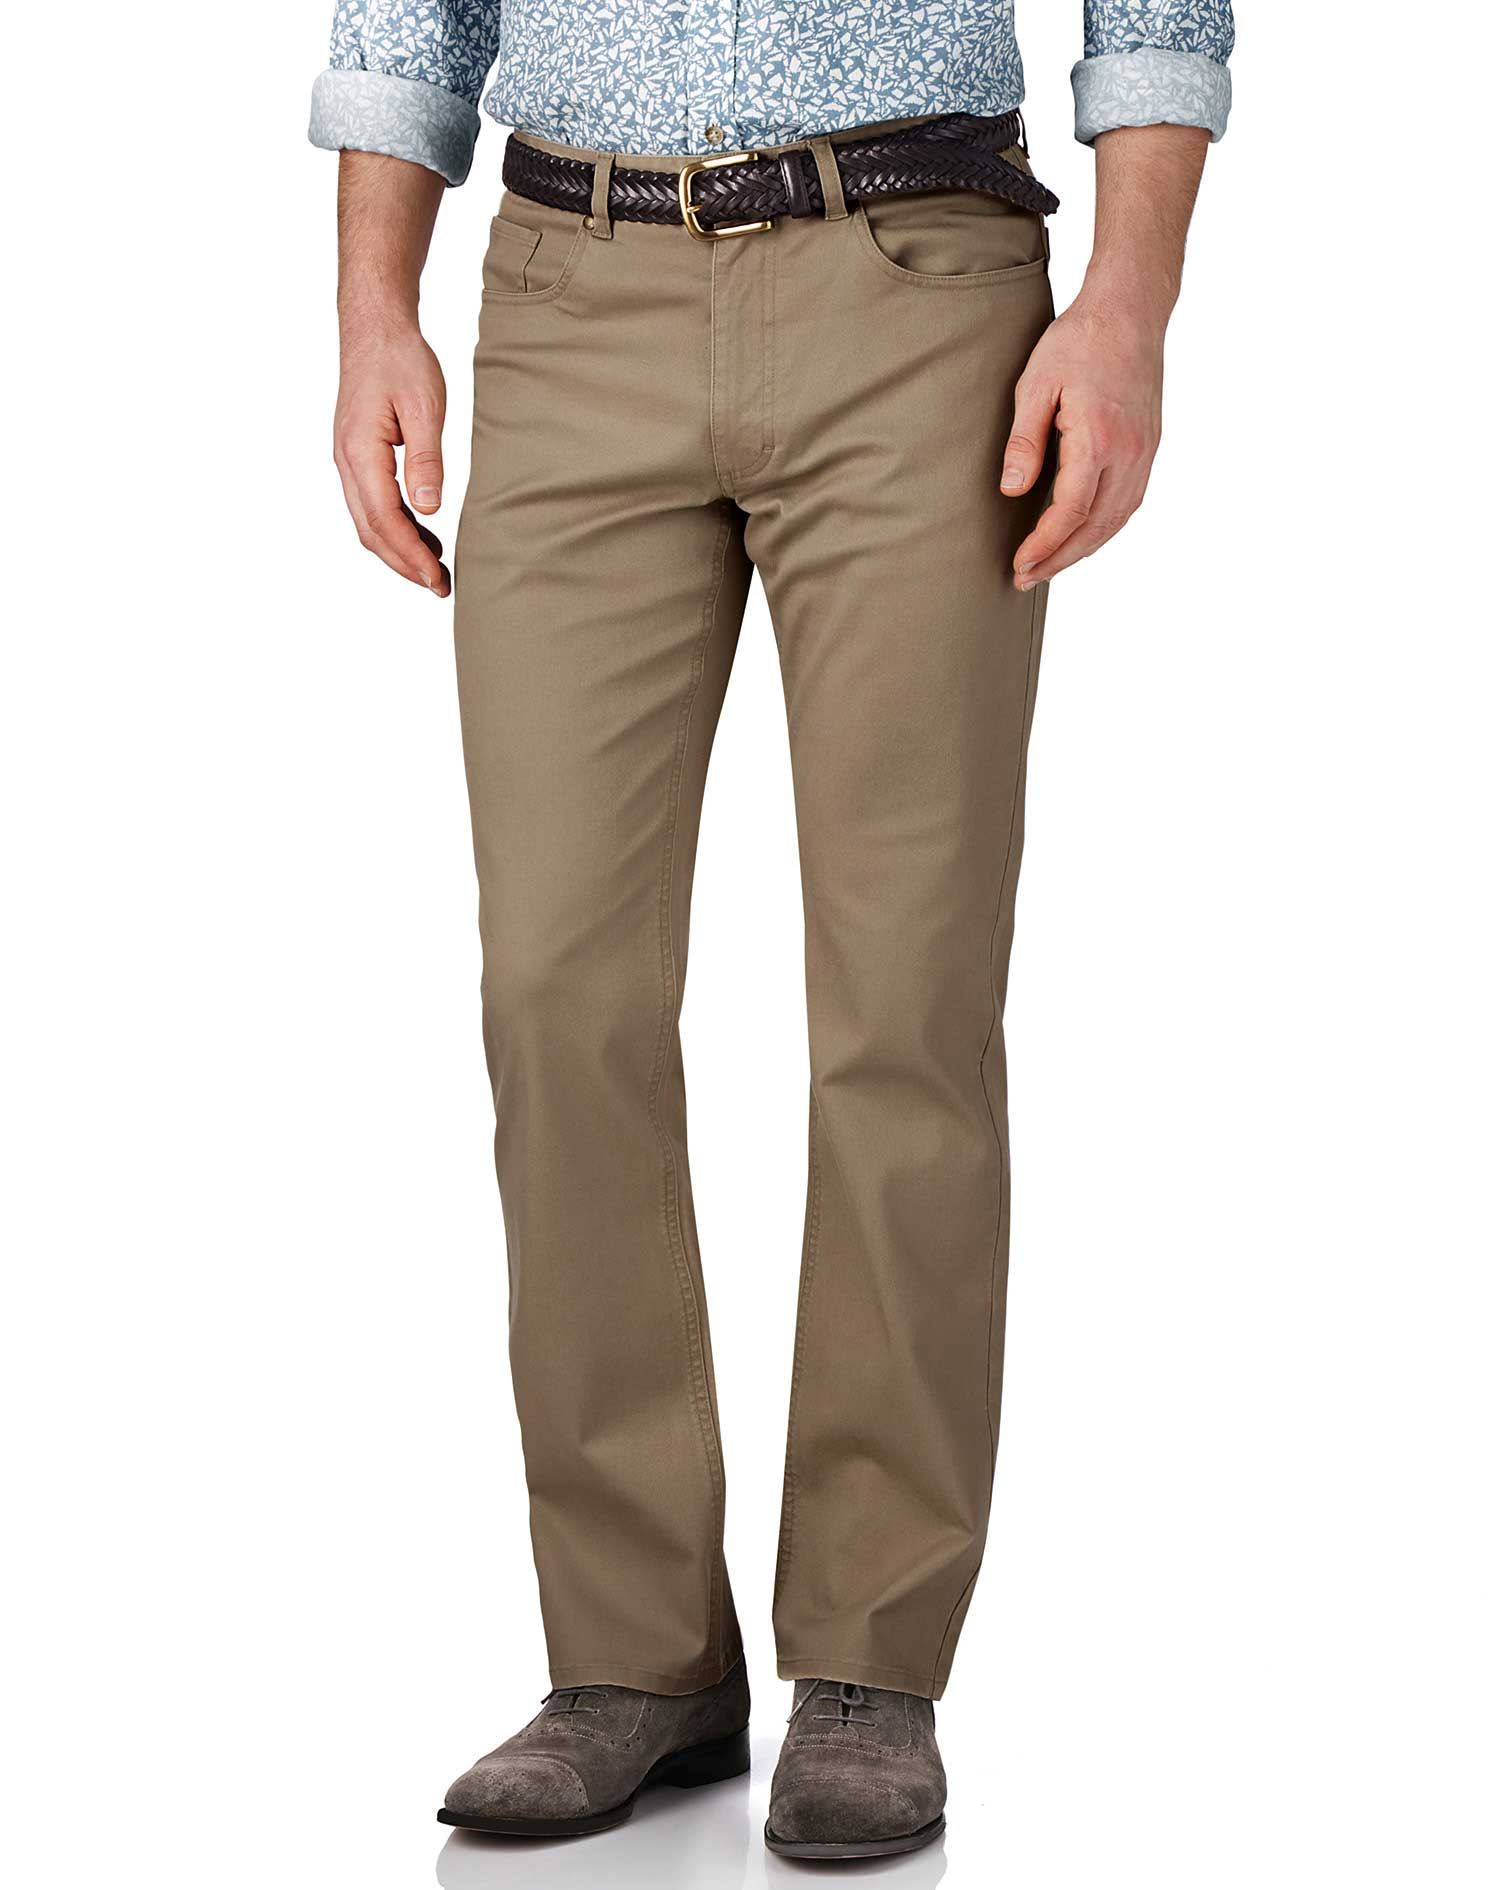 Stone Classic Fit Stretch Pique 5 Pocket Trousers Size W34 L32 by Charles Tyrwhitt